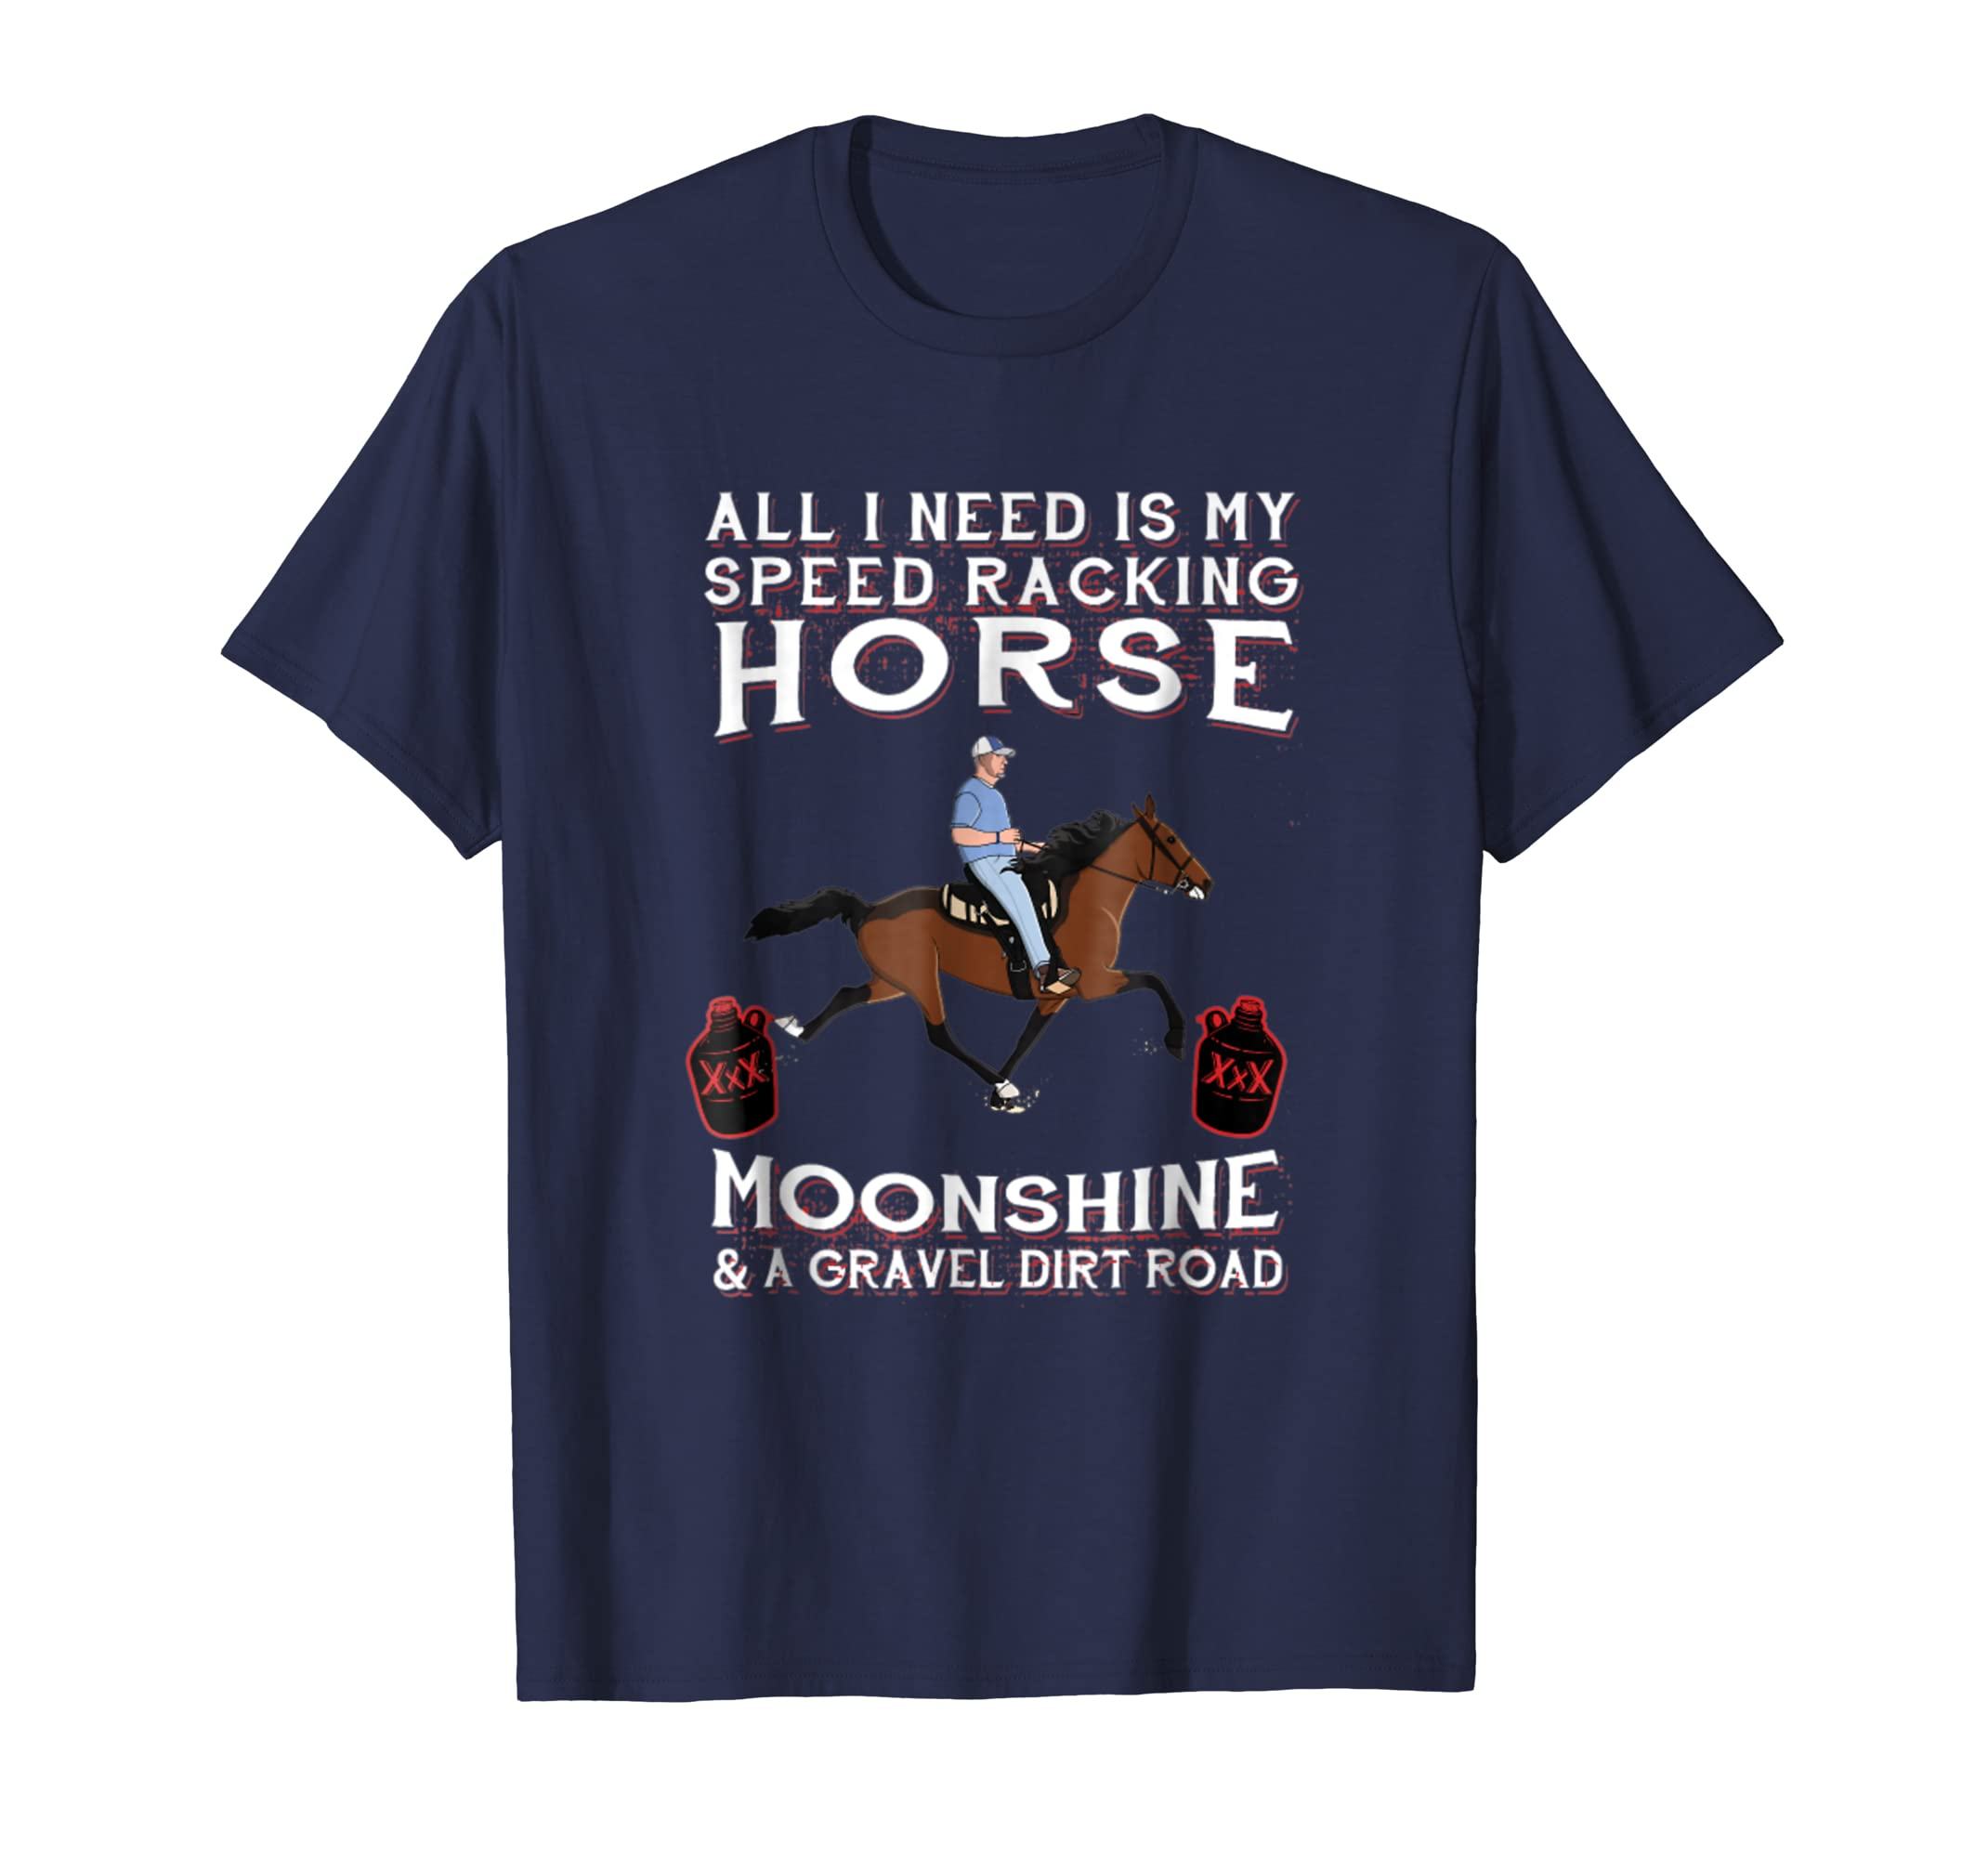 All I Need is my Speed Racking Horse and Moonshine-ln